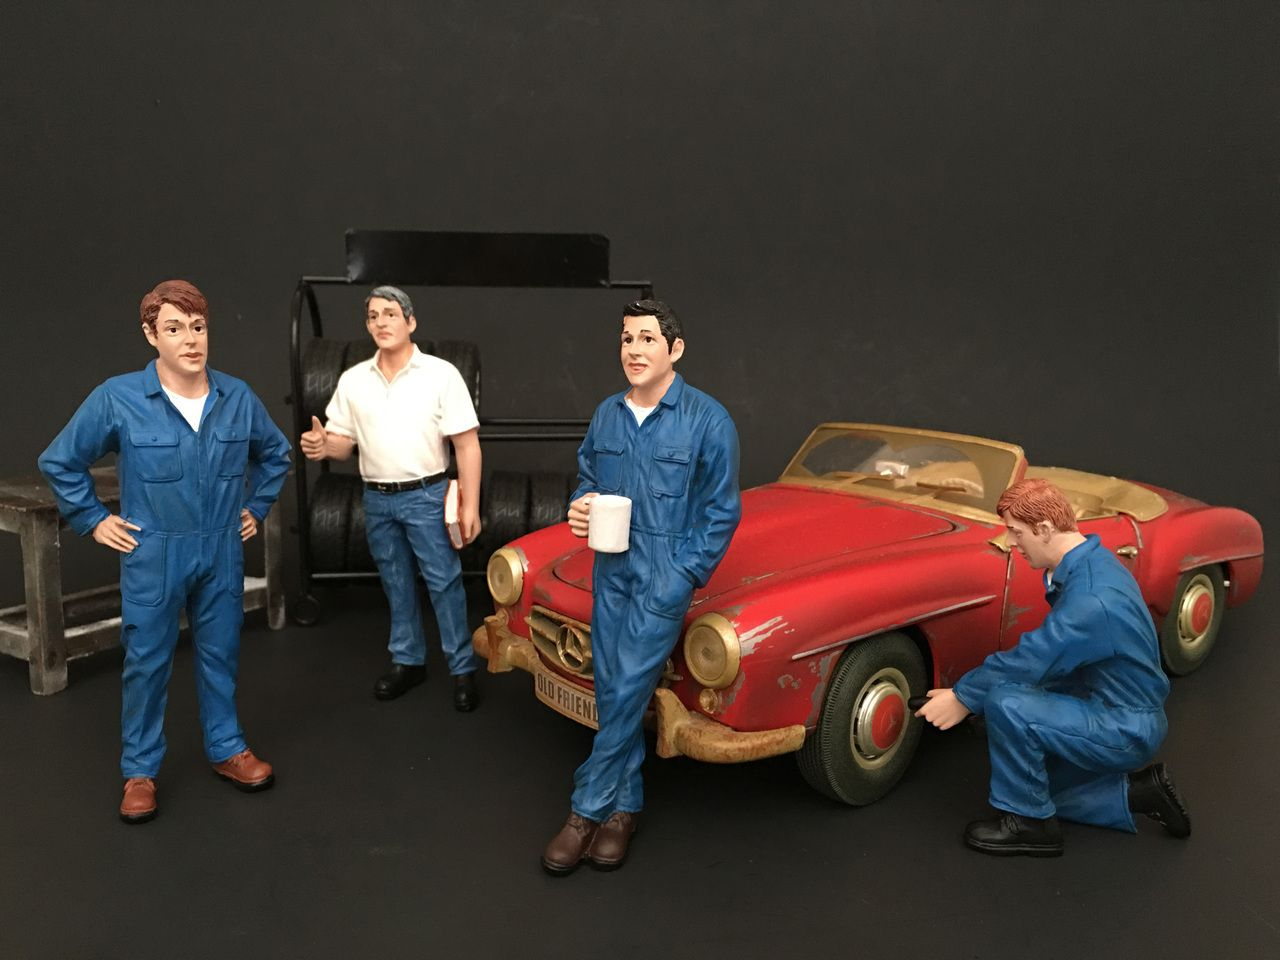 Sitting Mechanics 2 piece Figurine Set for 1//18 Scale Models by American